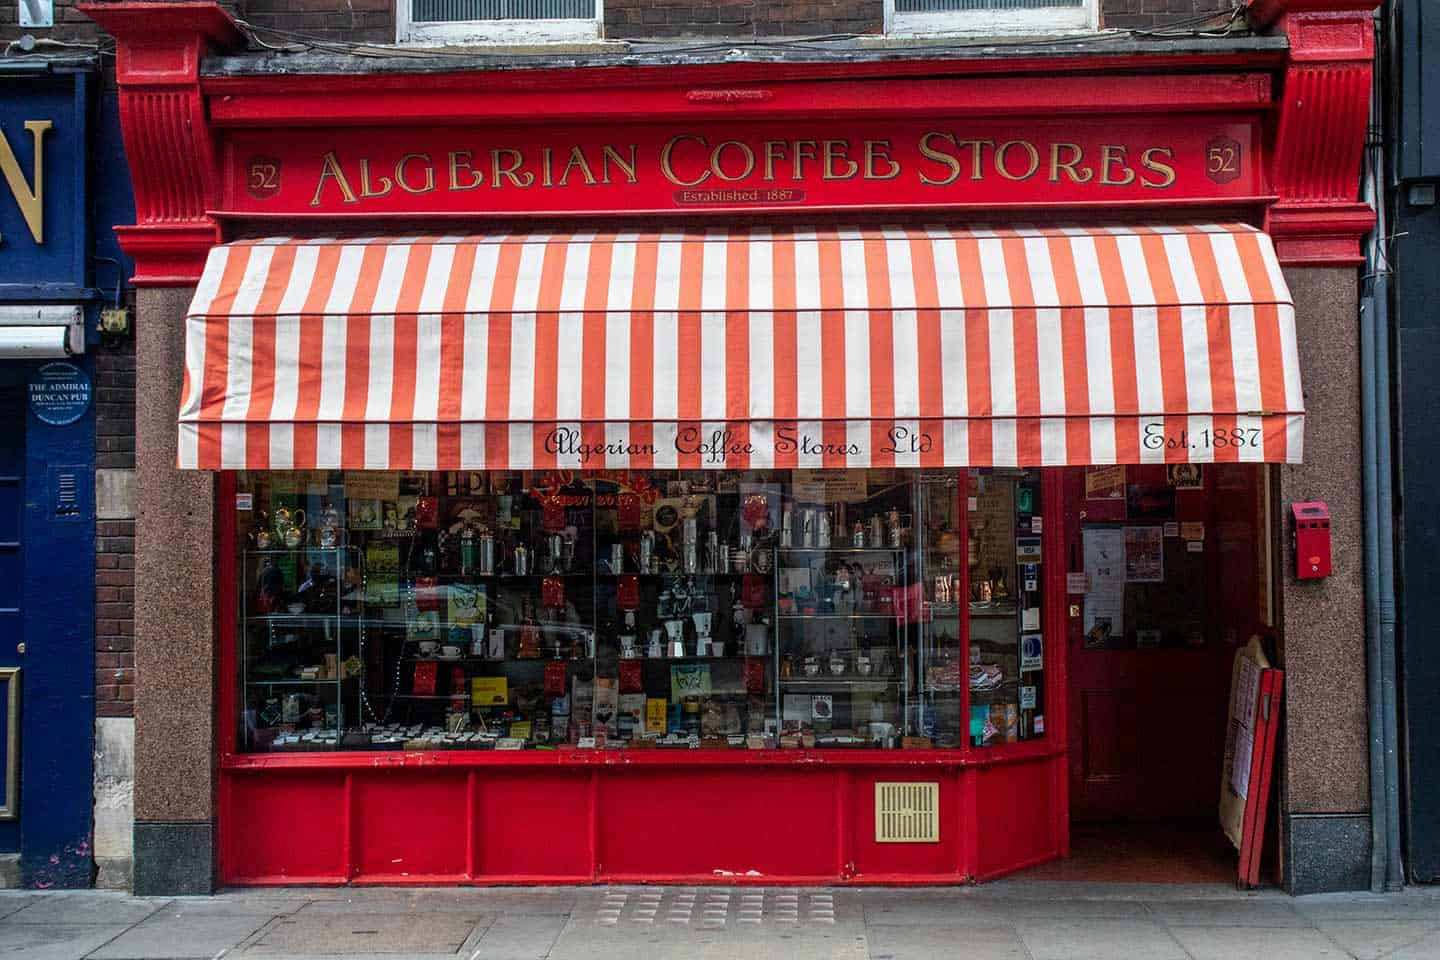 Image of the Algerian Coffee Stores on Old Compton Street, Soho